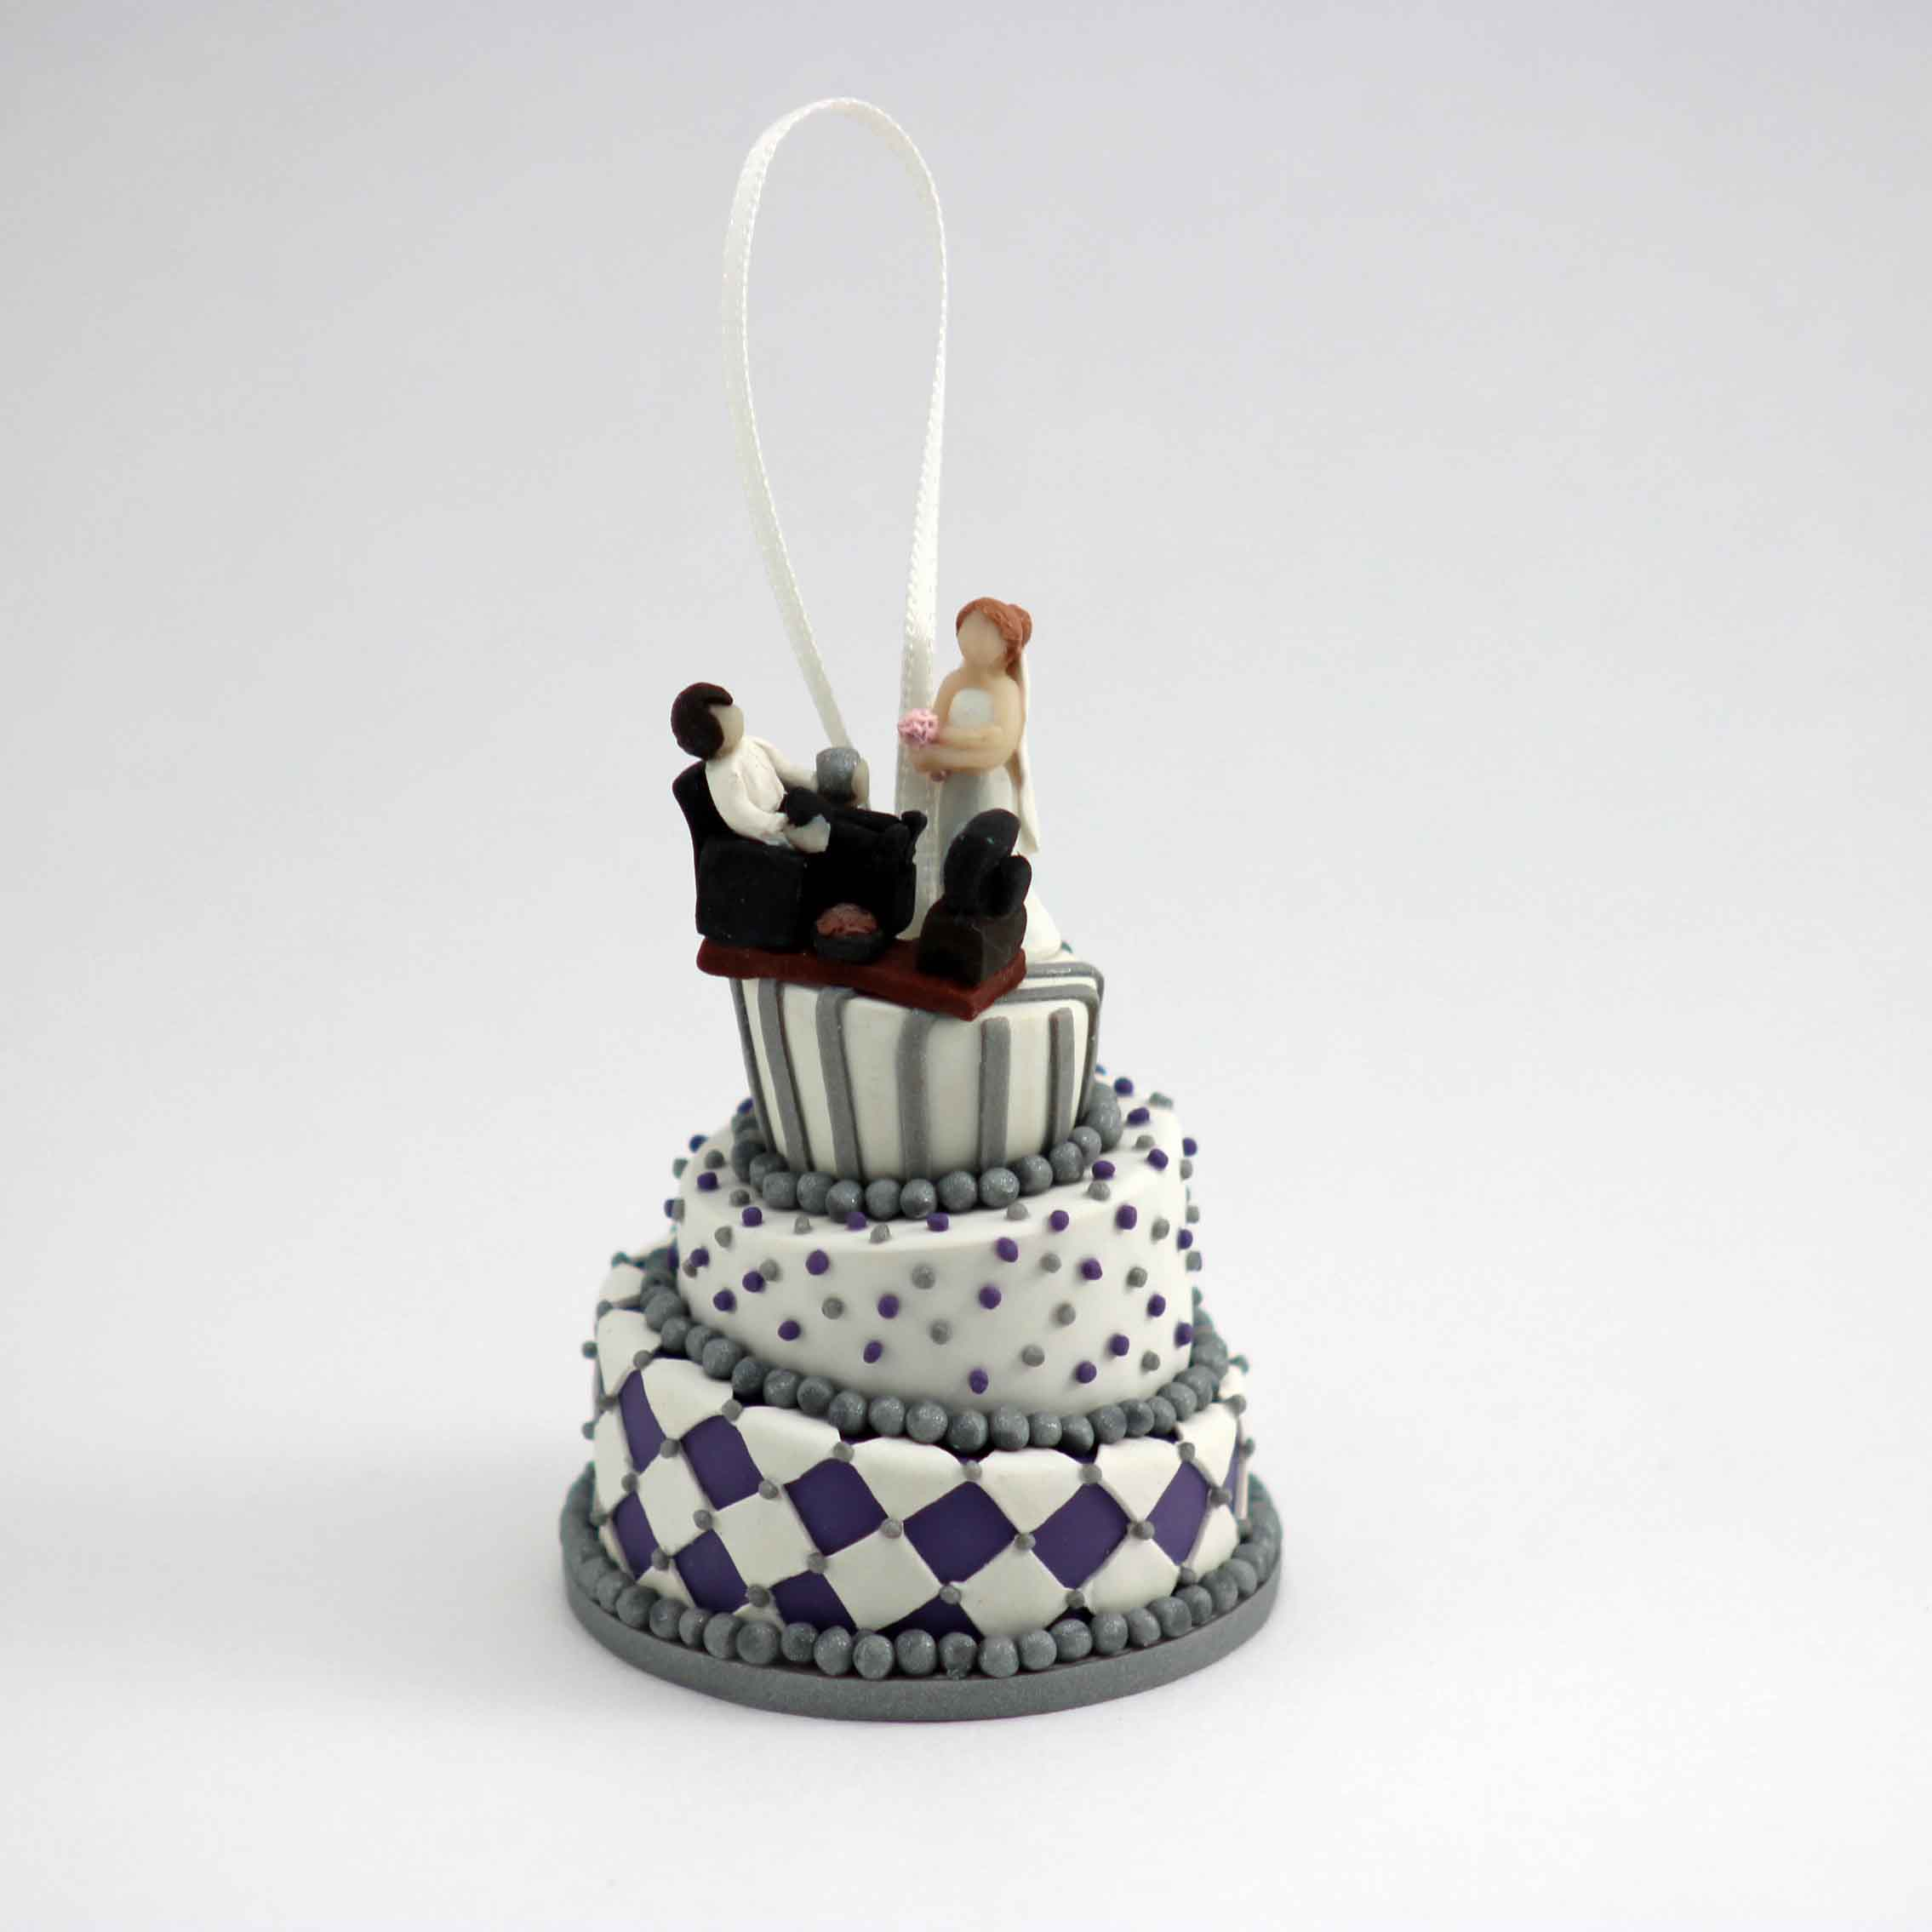 Minature of a wedding cake silver and purple with couple on top.jpg